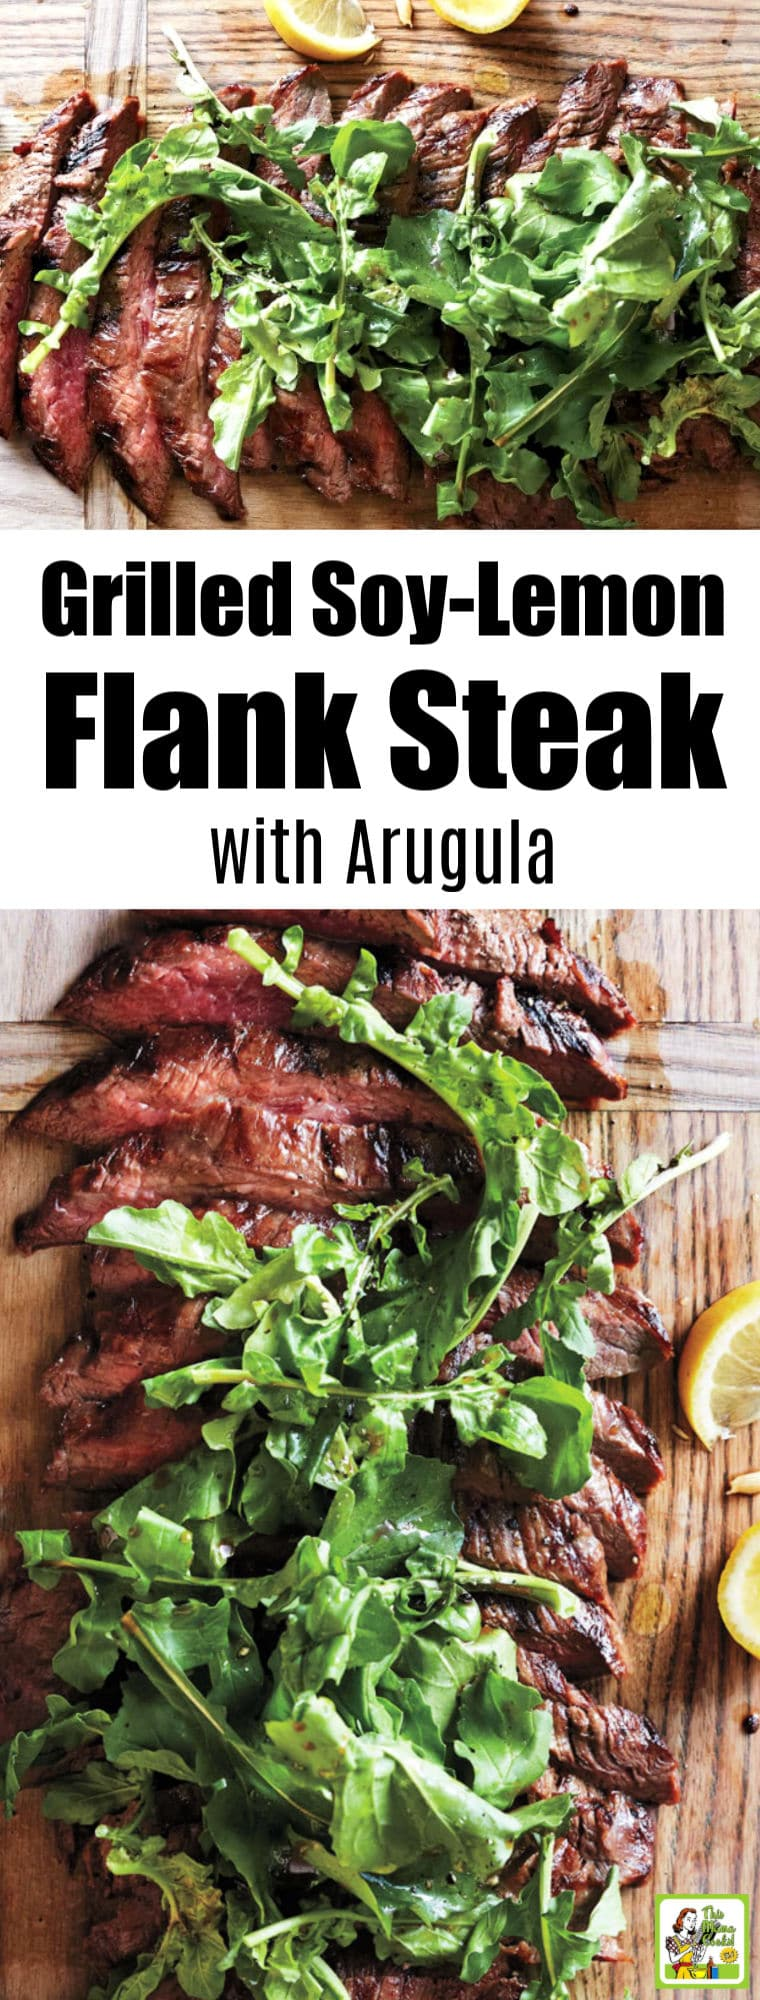 Grilled Soy-Lemon Flank Steak with Arugula Recipe